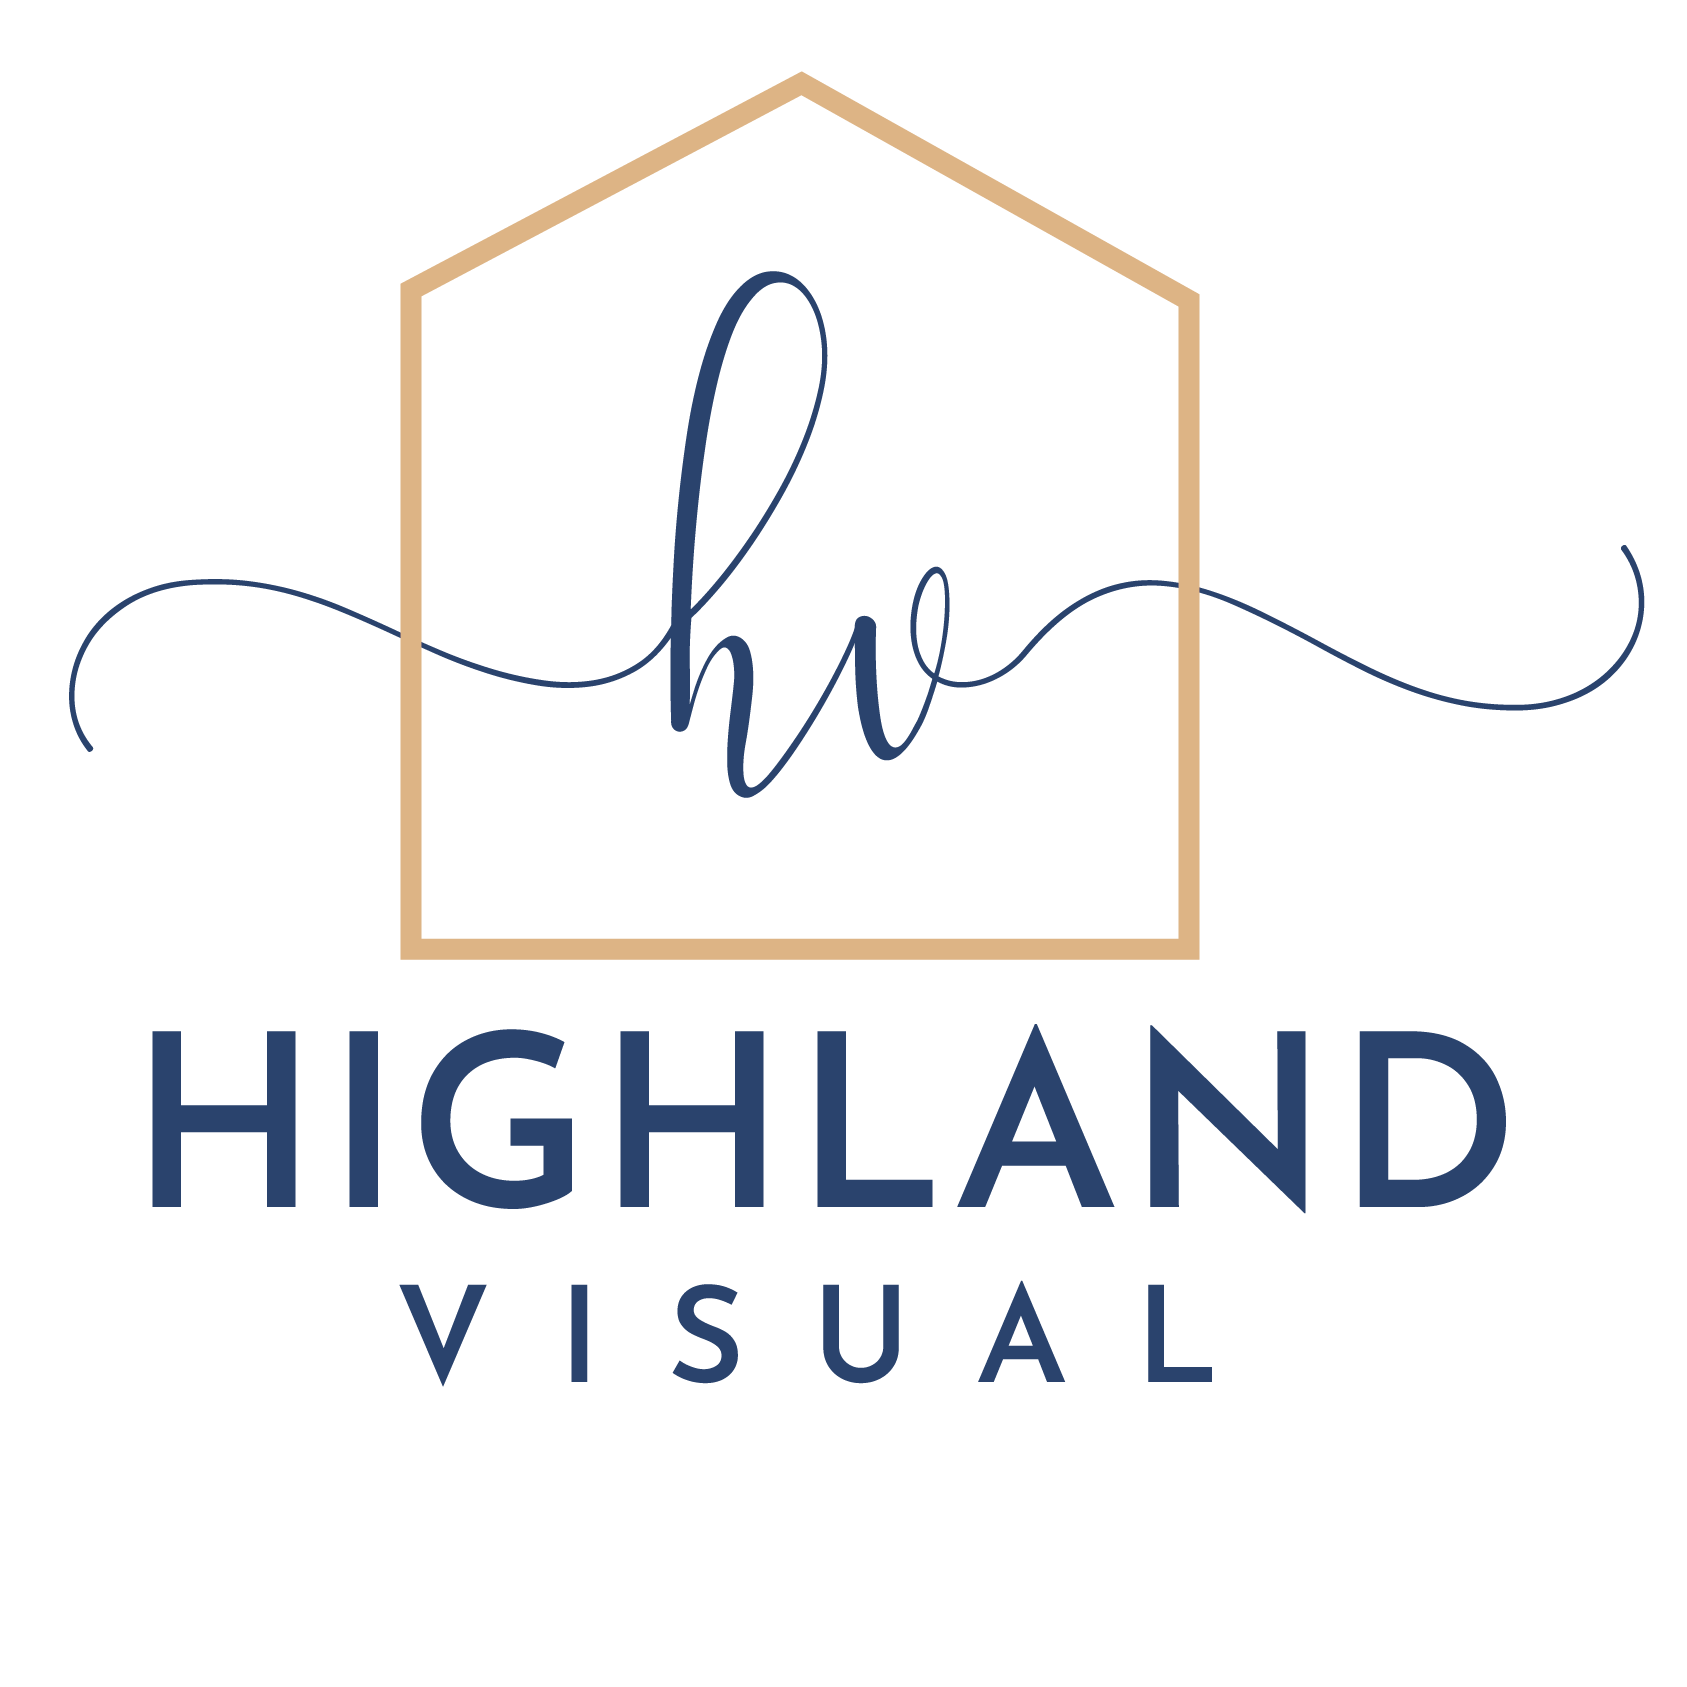 Real Estate Videography and Photography in Davenport, IA - Highland Visual